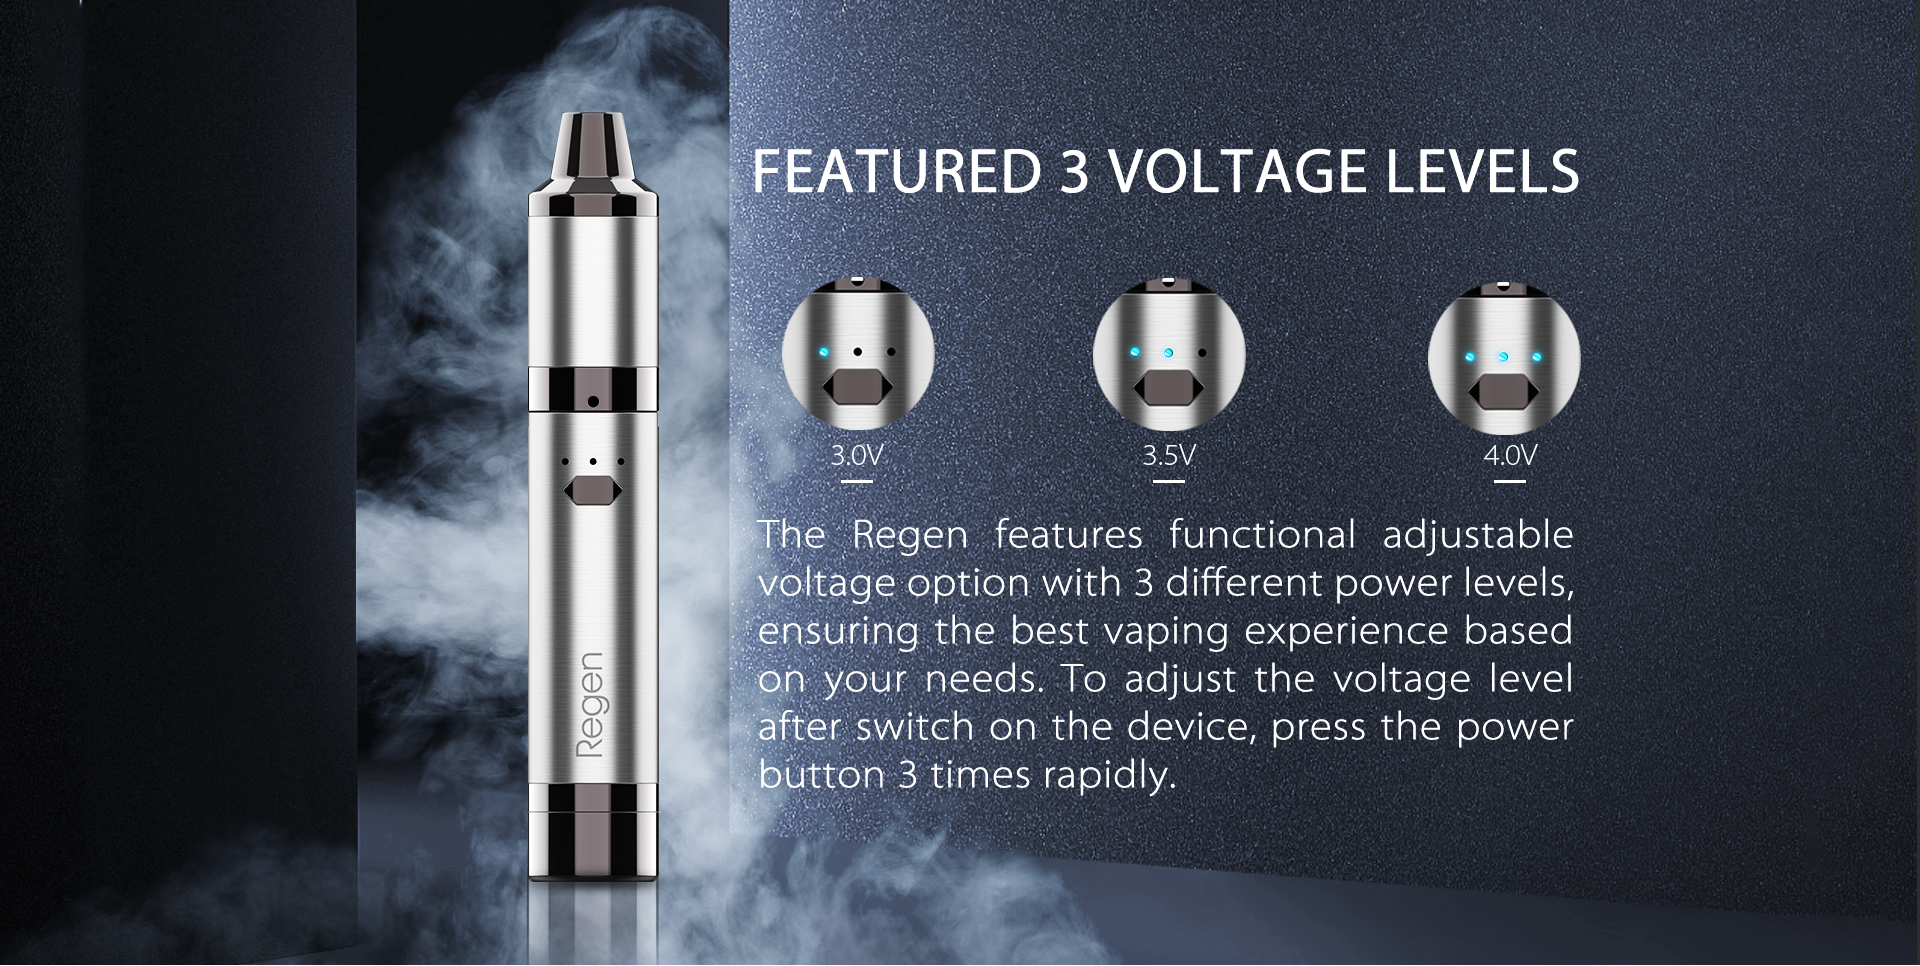 The Yocan Regen vaporizer pen features functional adjustable voltage option with 3 different power levels.